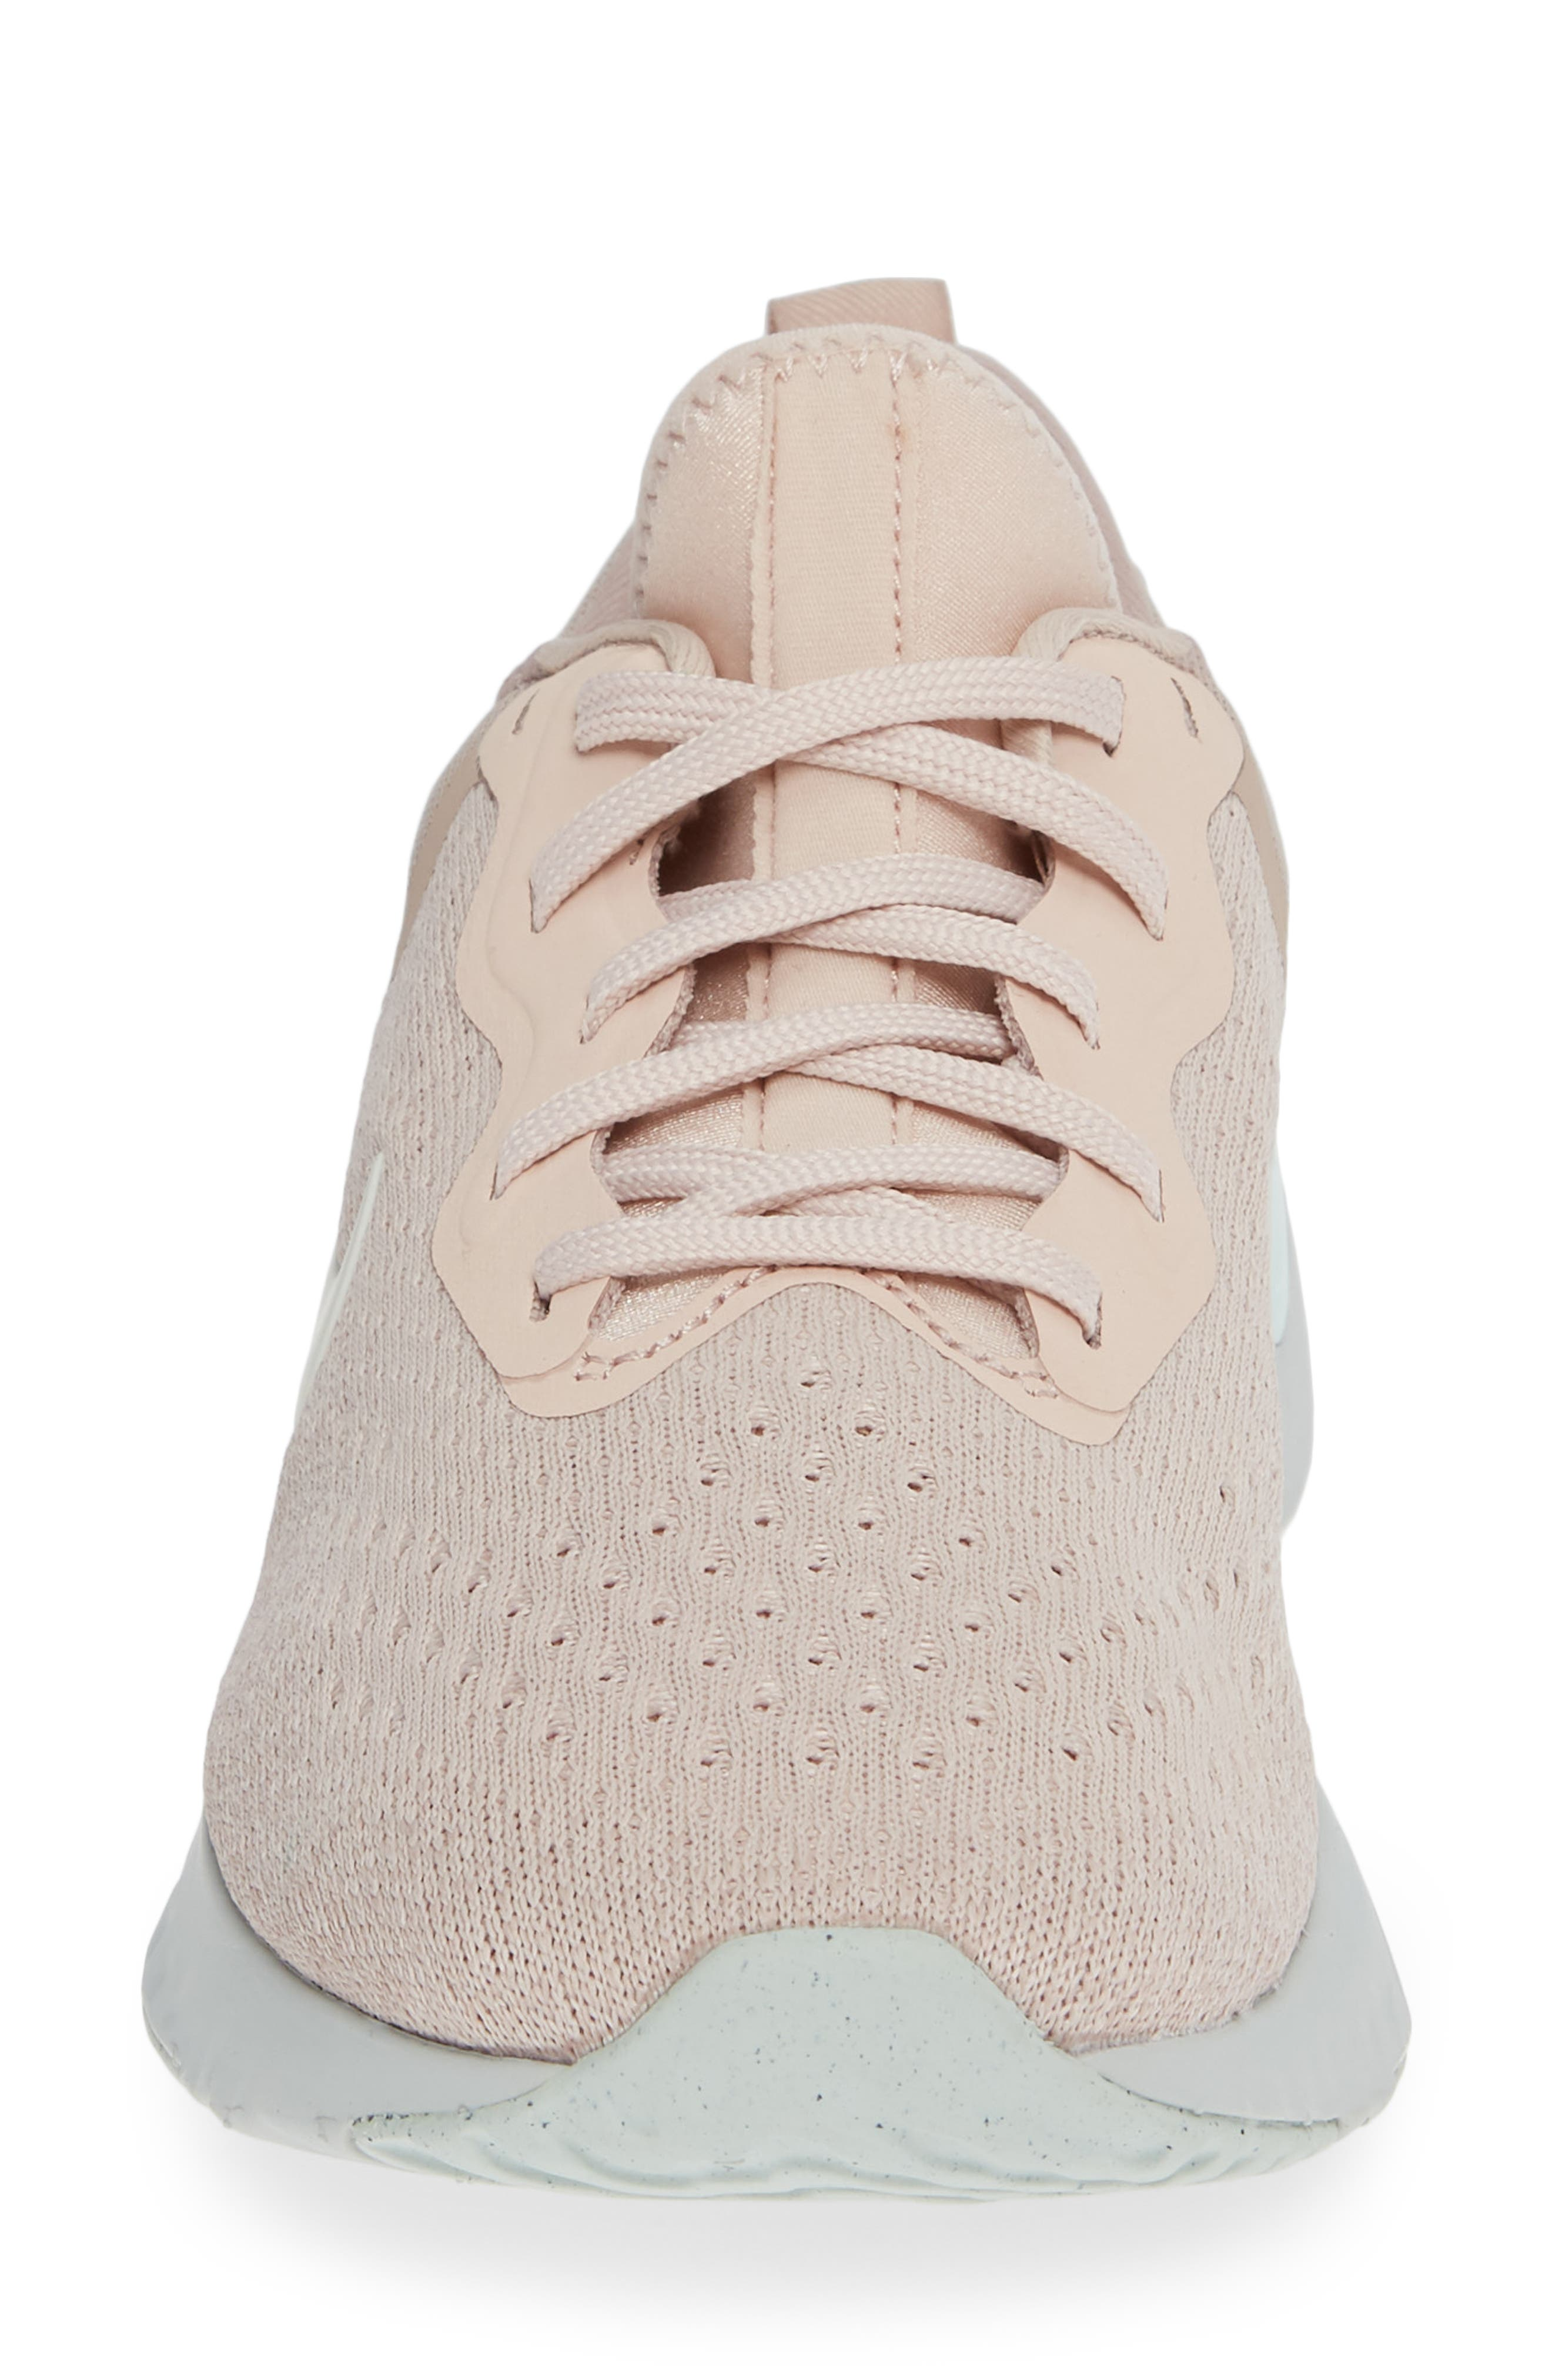 Odyssey React Running Shoe,                             Alternate thumbnail 4, color,                             BEIGE/ PHANTOM-DIFFUSED TAUPE